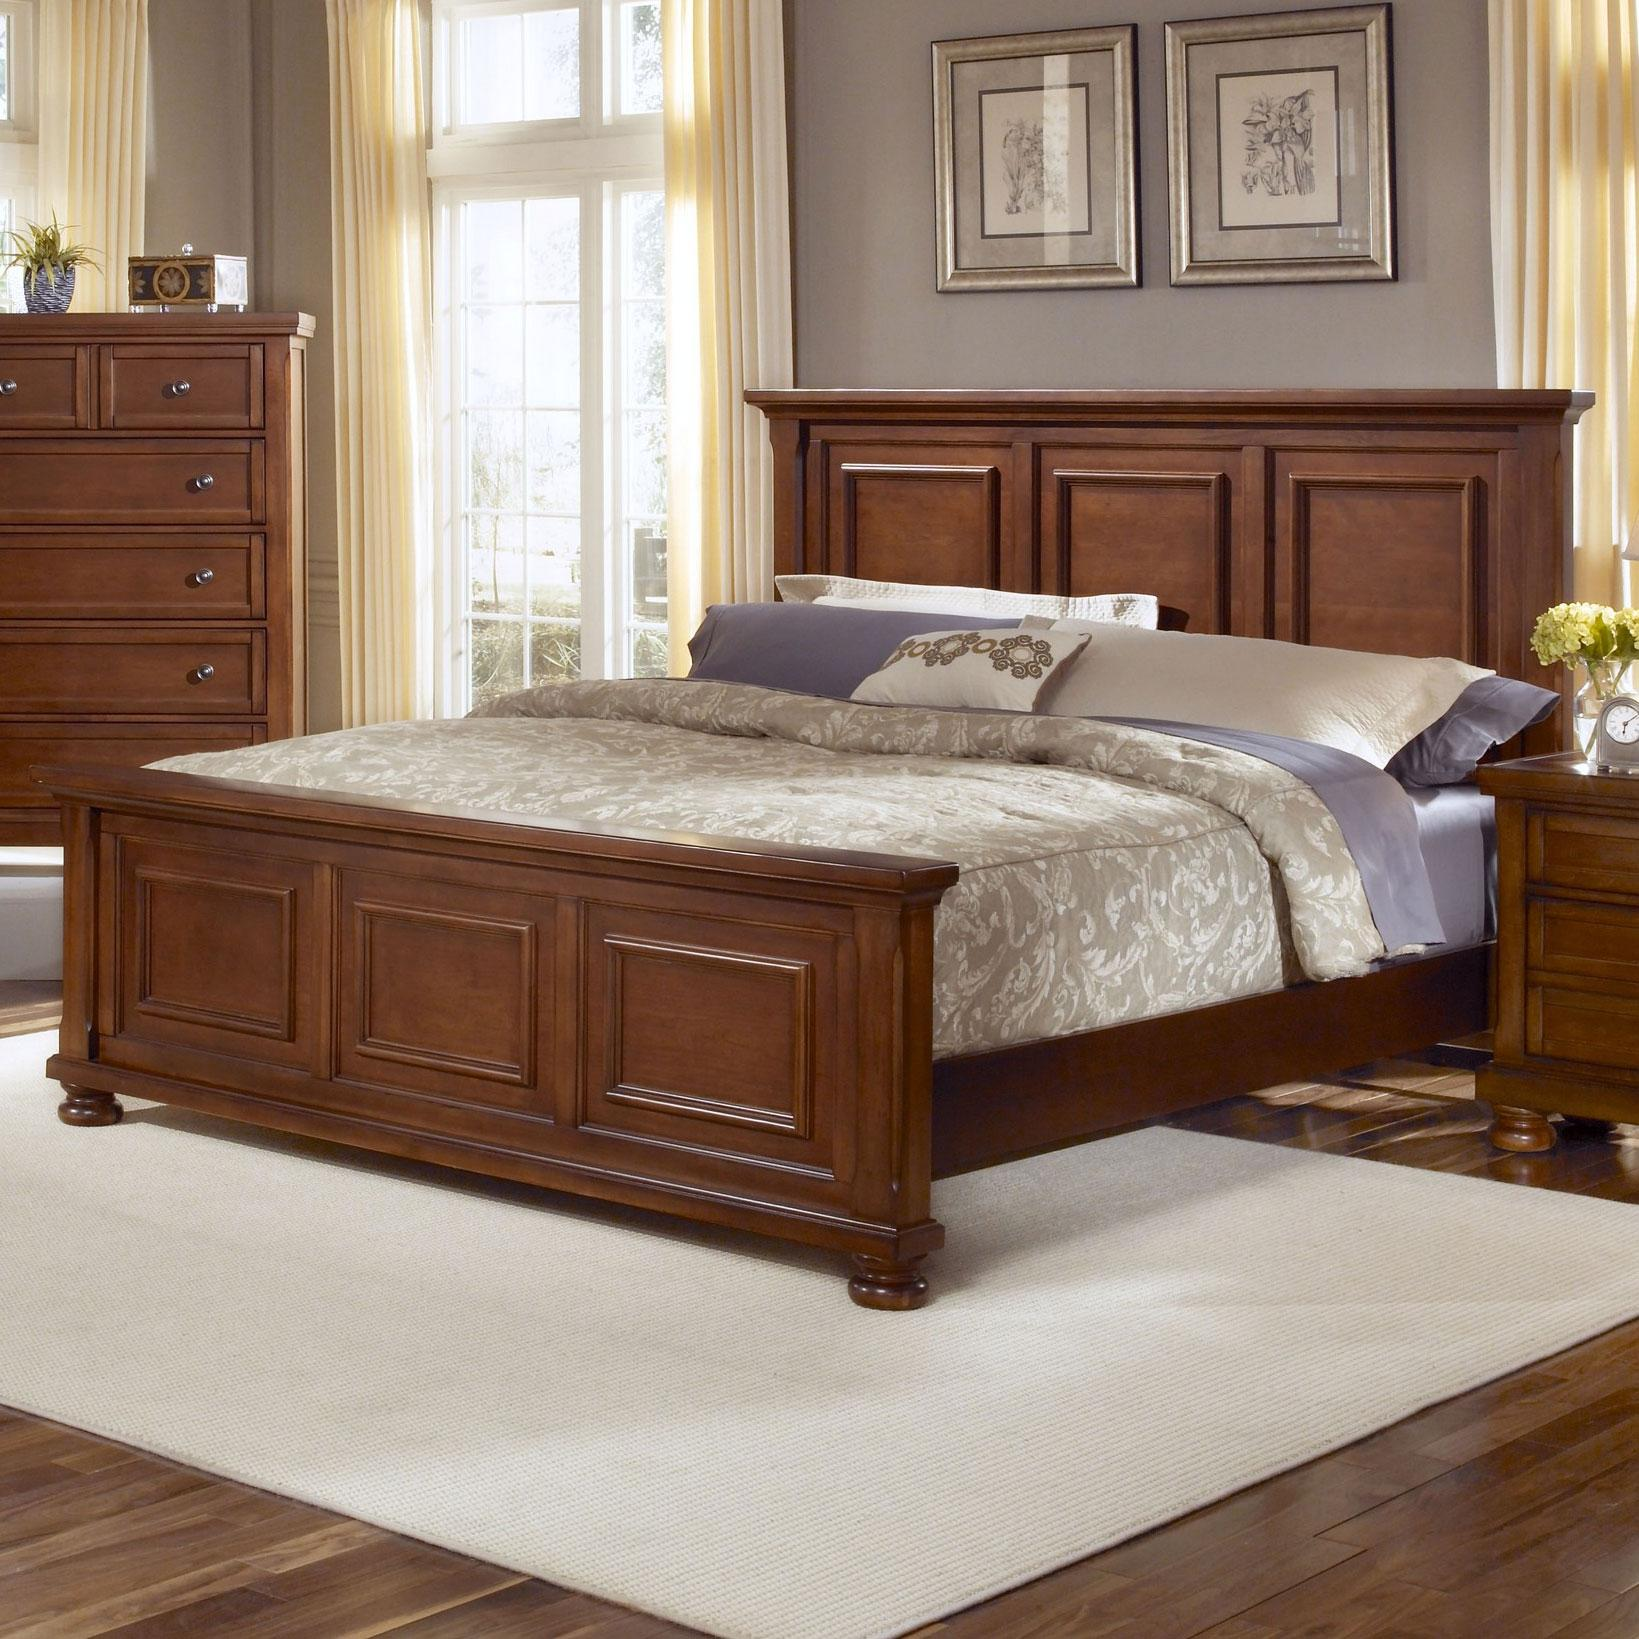 Vaughan Bassett Reflections King Mansion Bed - Item Number: 532-668+866+922+MS1